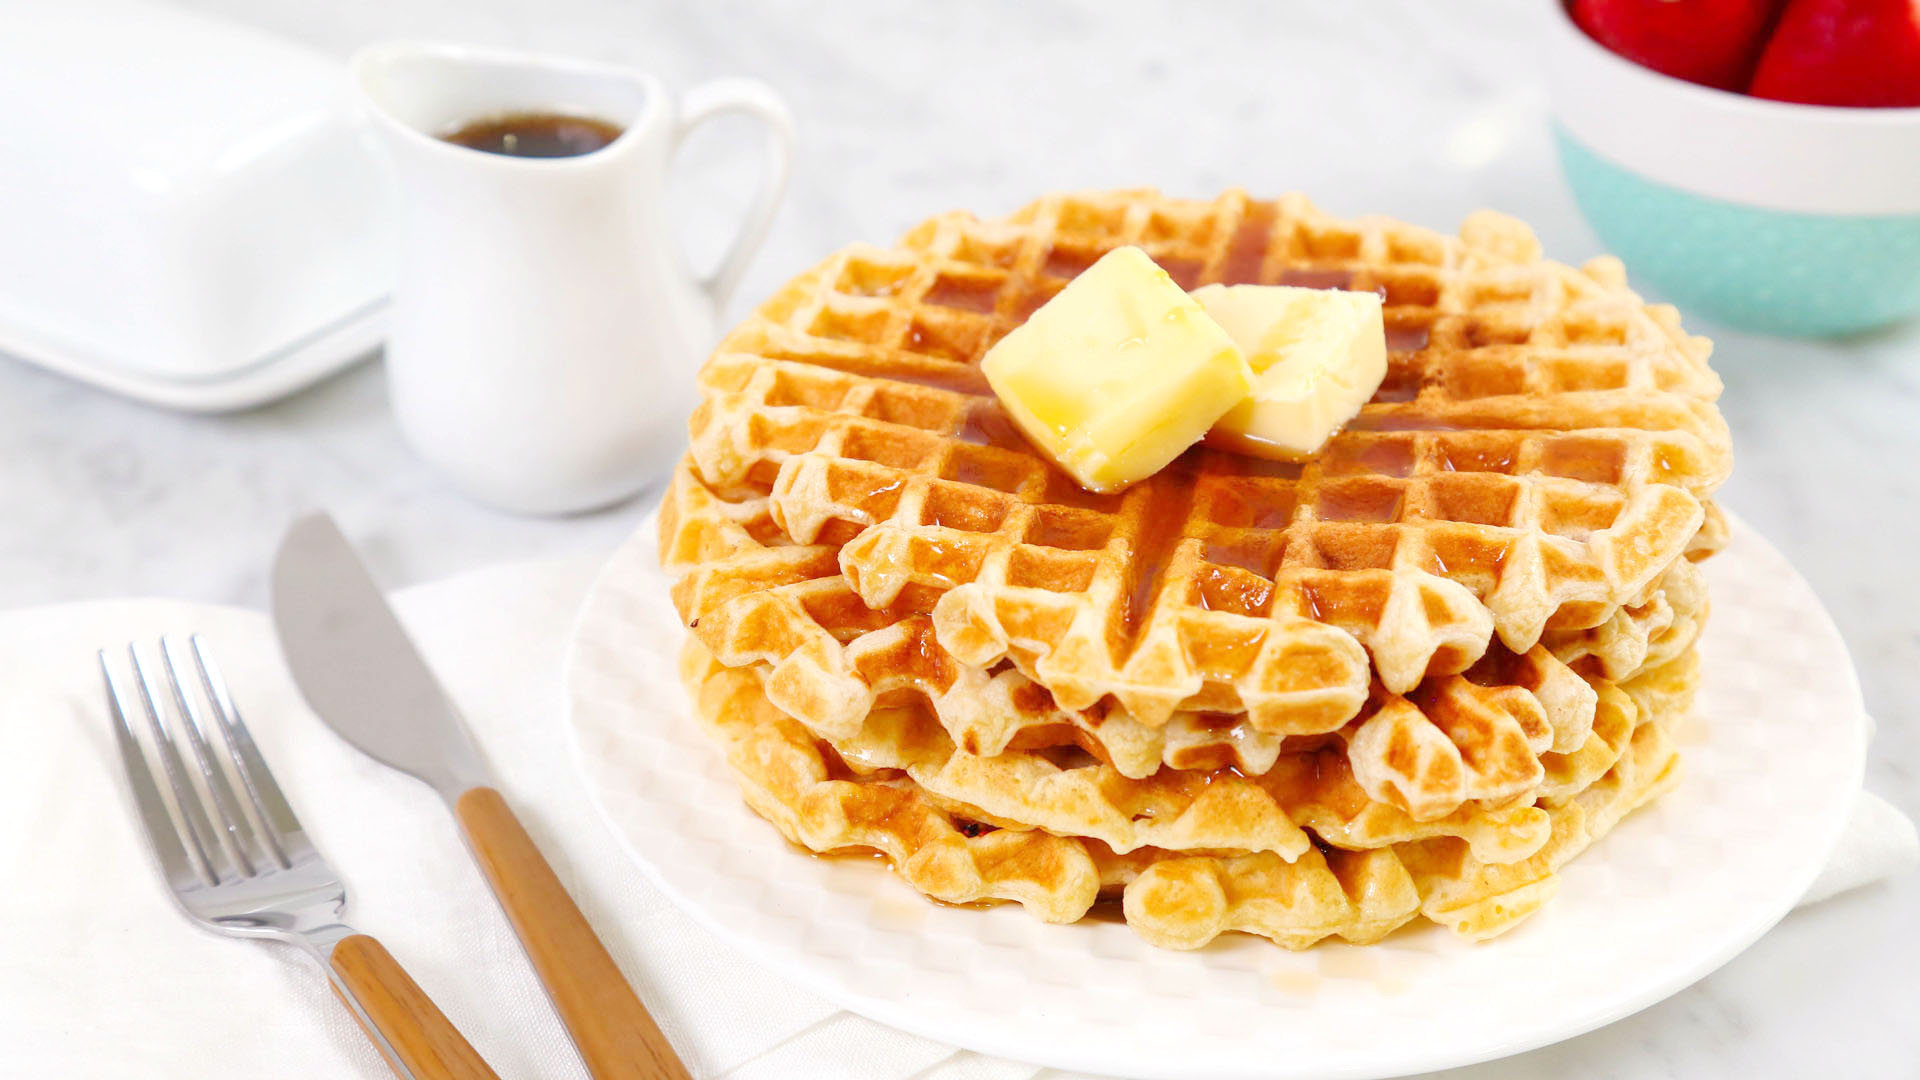 Classic-Waffles_16x9_The-Domestic-Geek